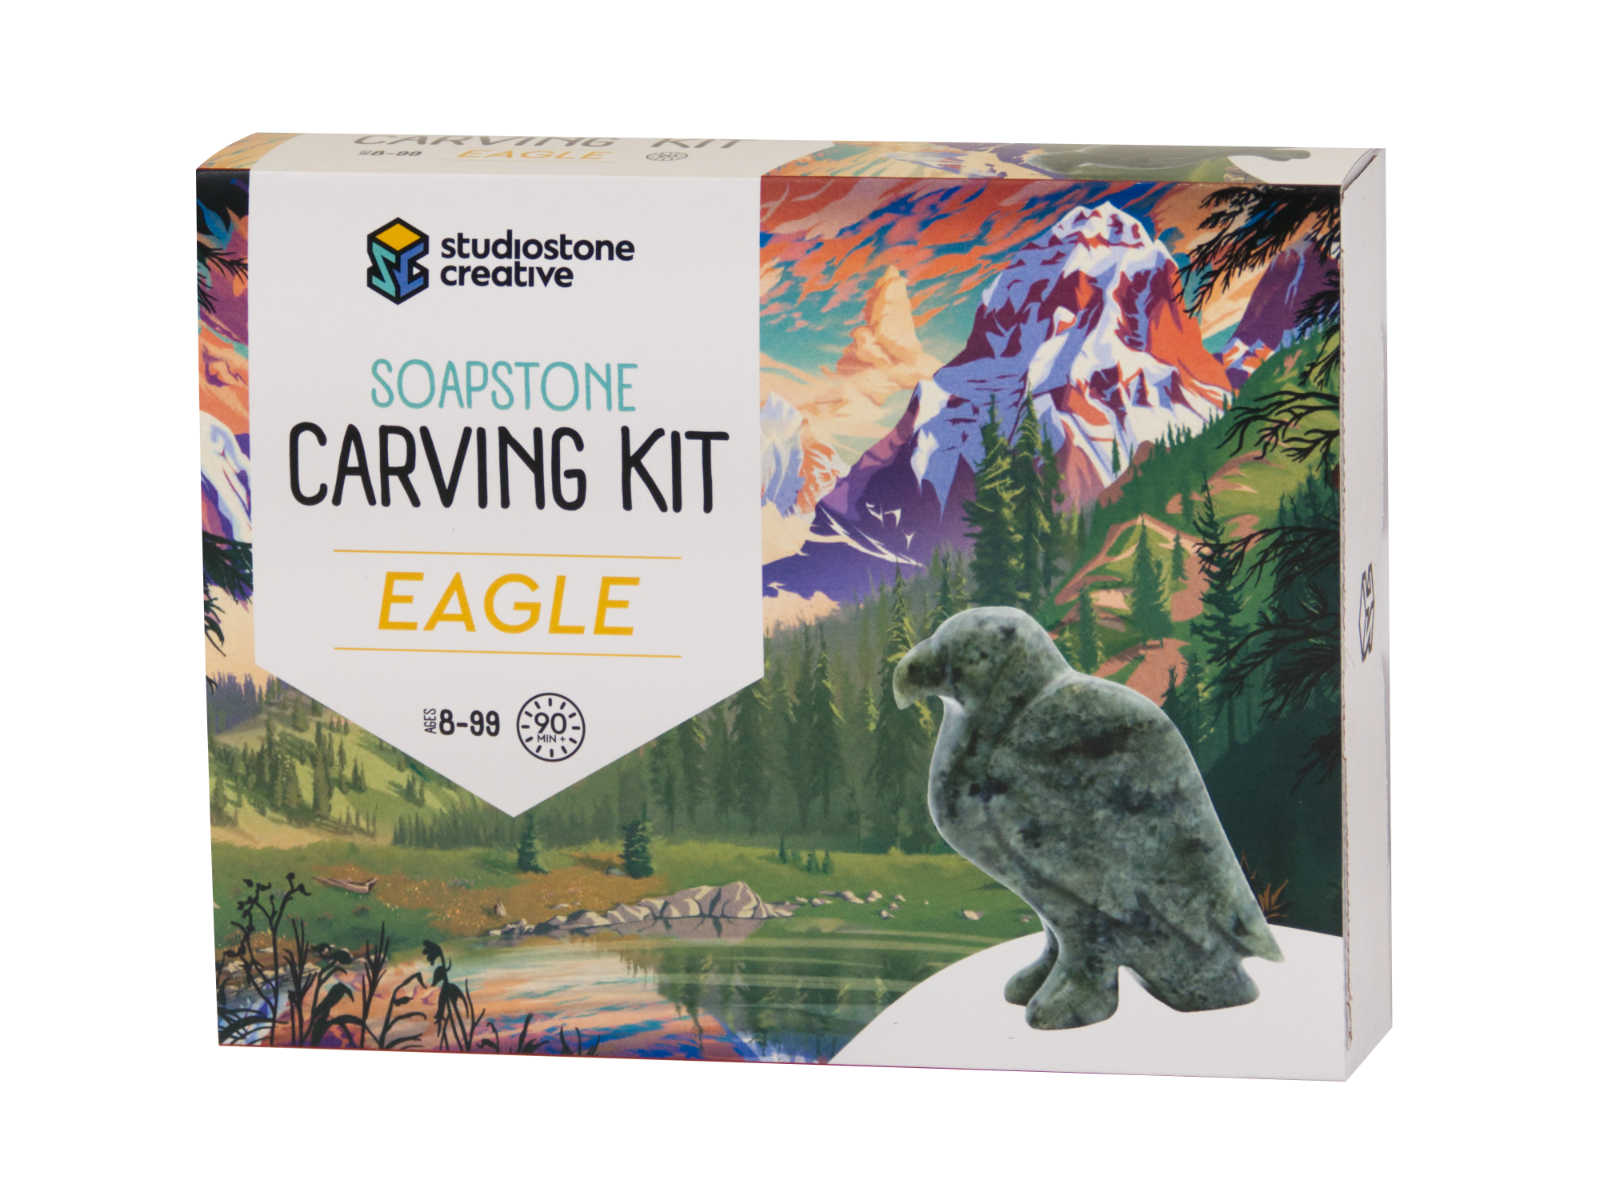 Eagle soapstone carving kit box